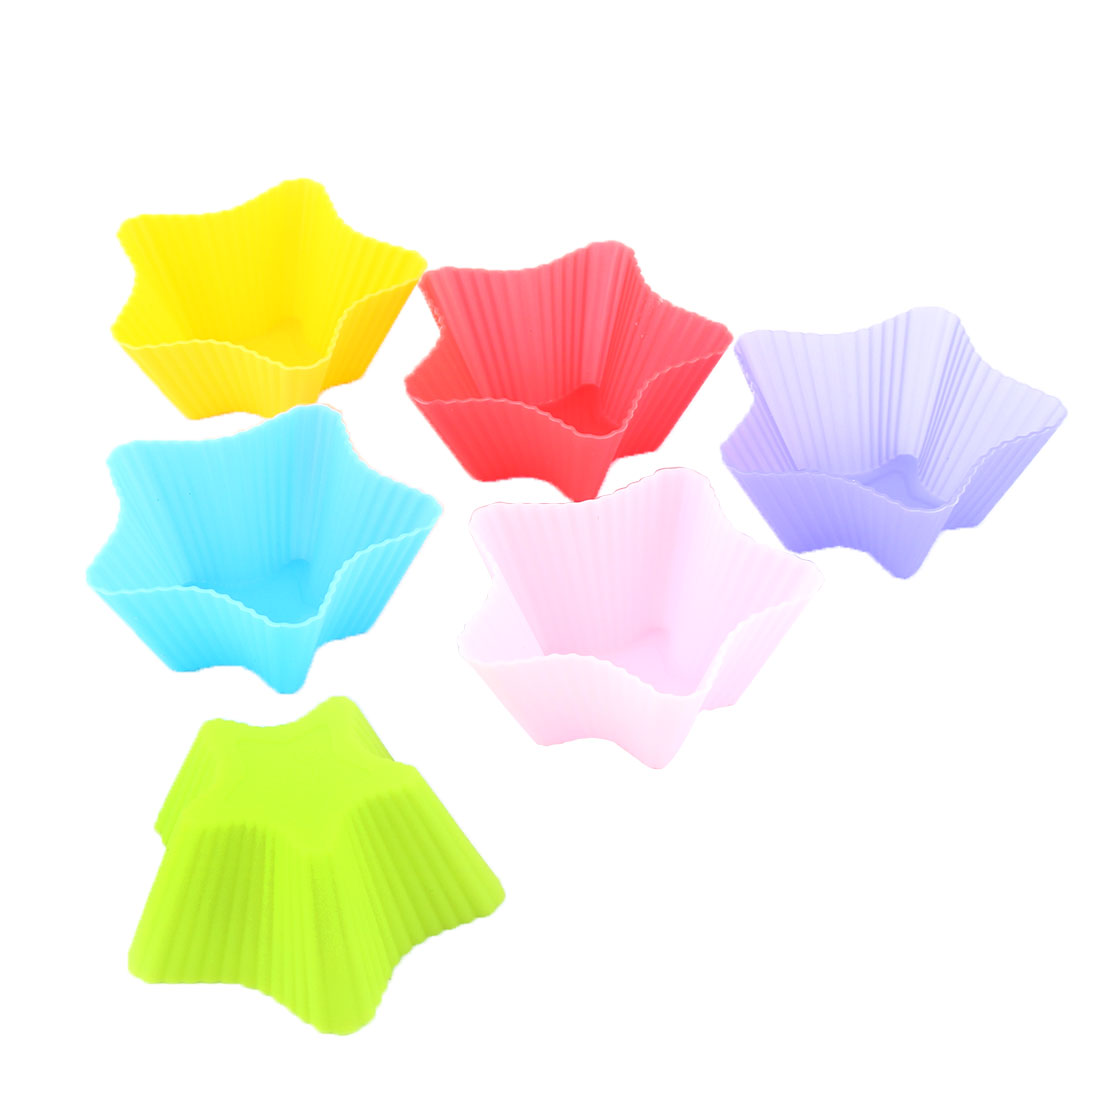 Home Bakery Silicone Star Shaped Cake Cupcake Mold Pan Baking Cup Assorted Color 6pcs